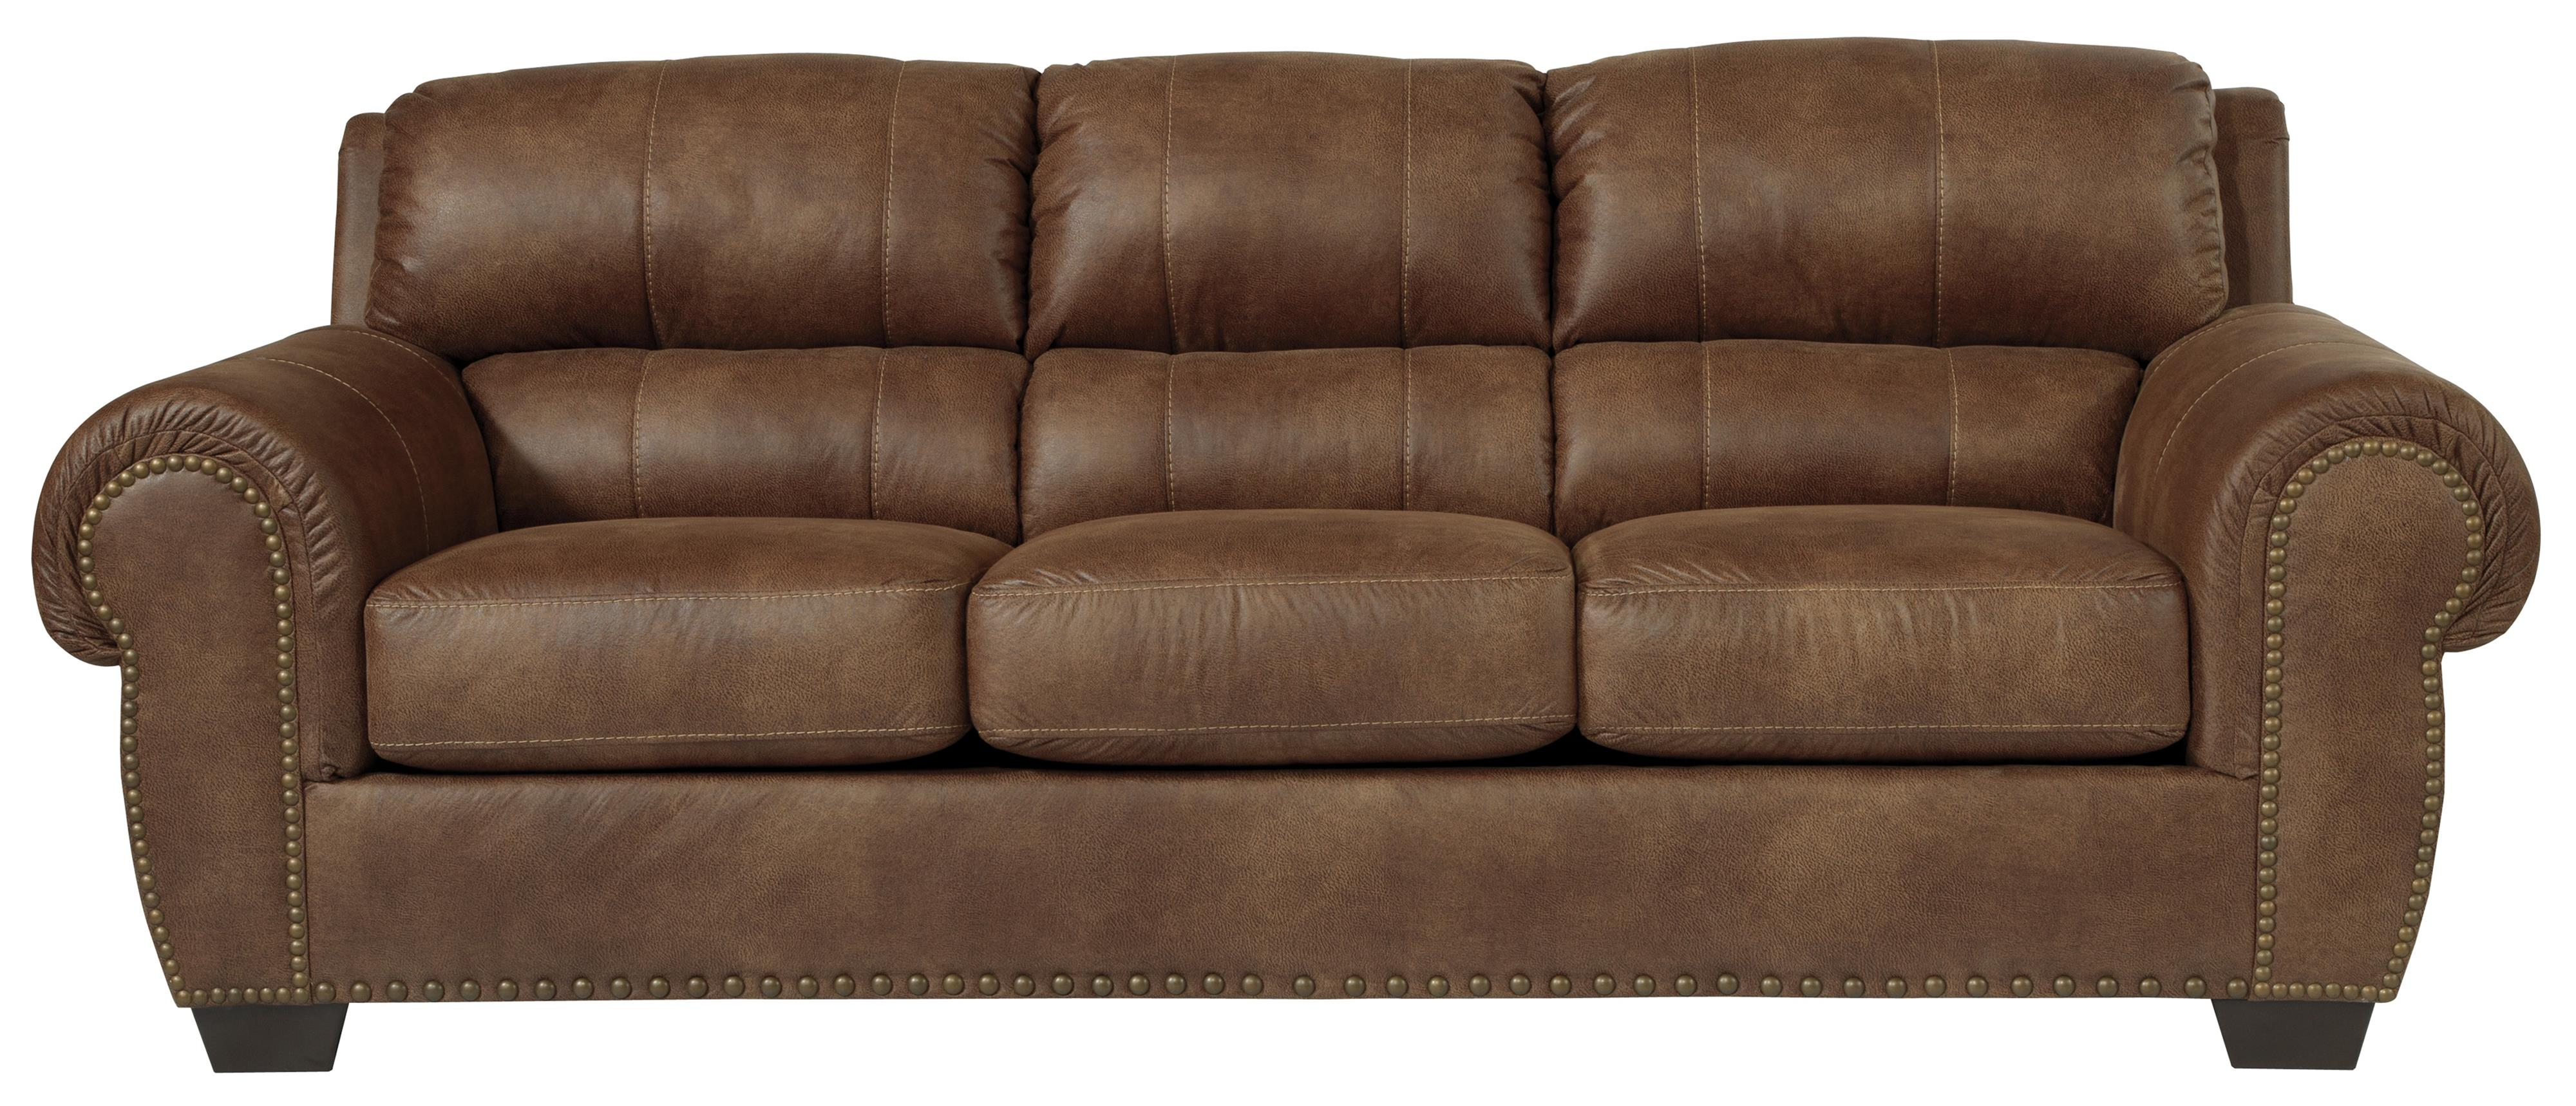 Benchcraft Burnsville Queen Sofa Sleeper - Item Number: 9720639